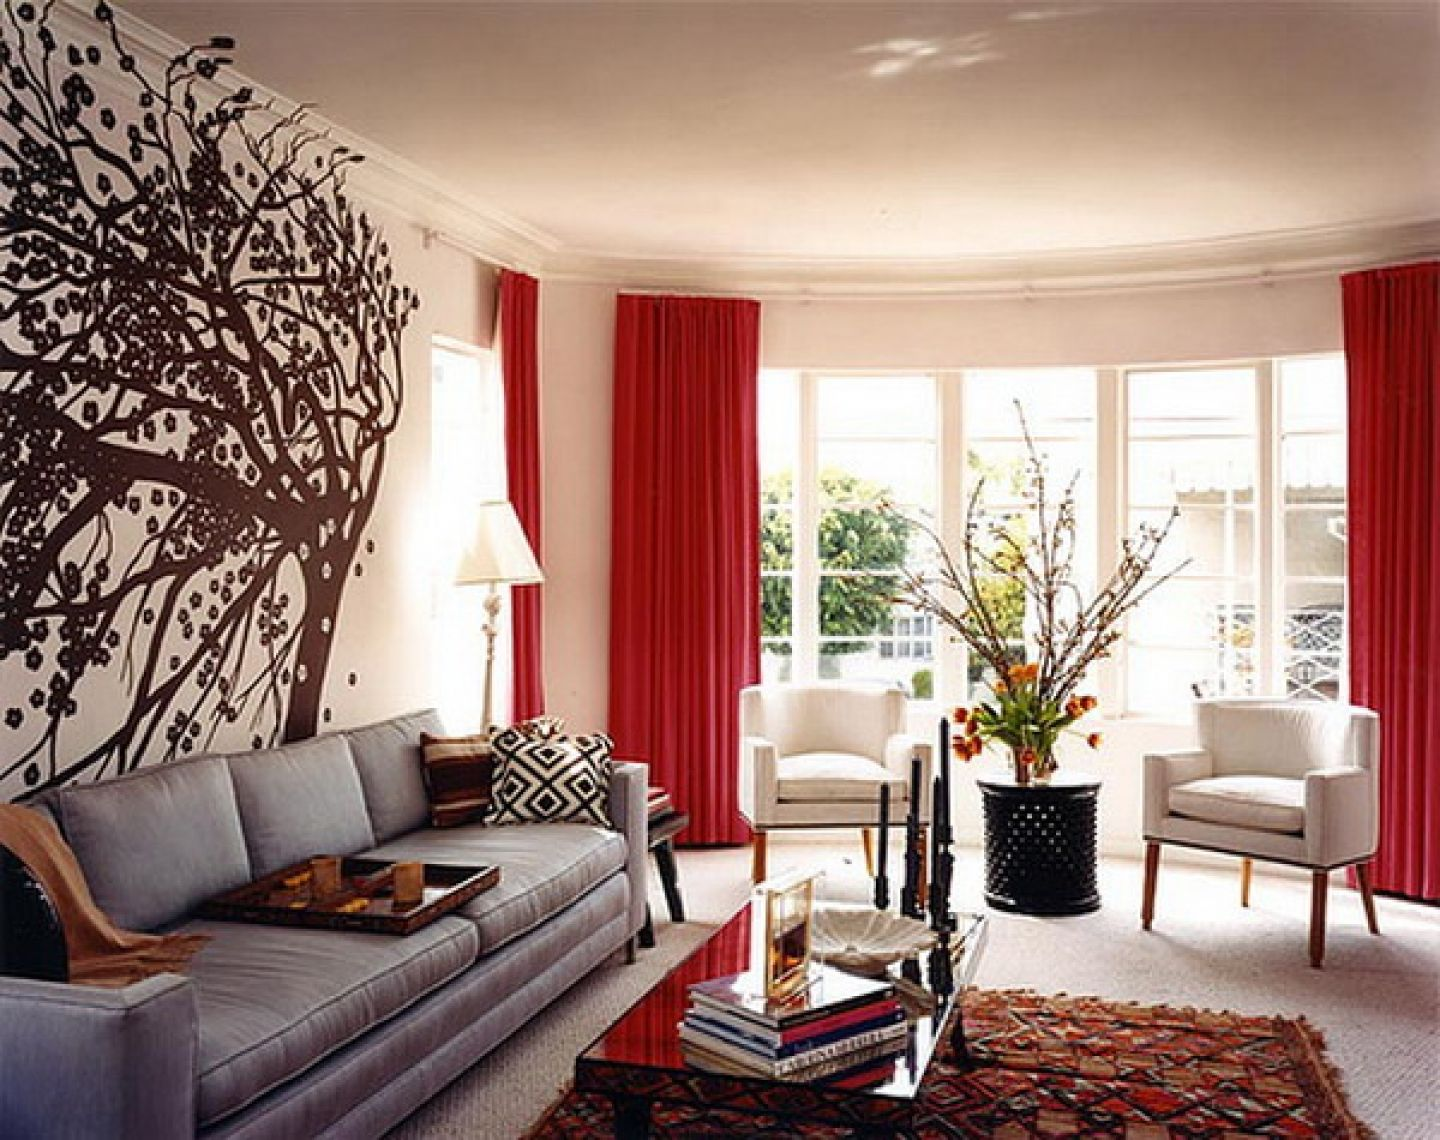 Wall Decor Magnificent Modern Style Luxury Home Murals Grey Sofa Red Curtain Wonderful Model Decoration